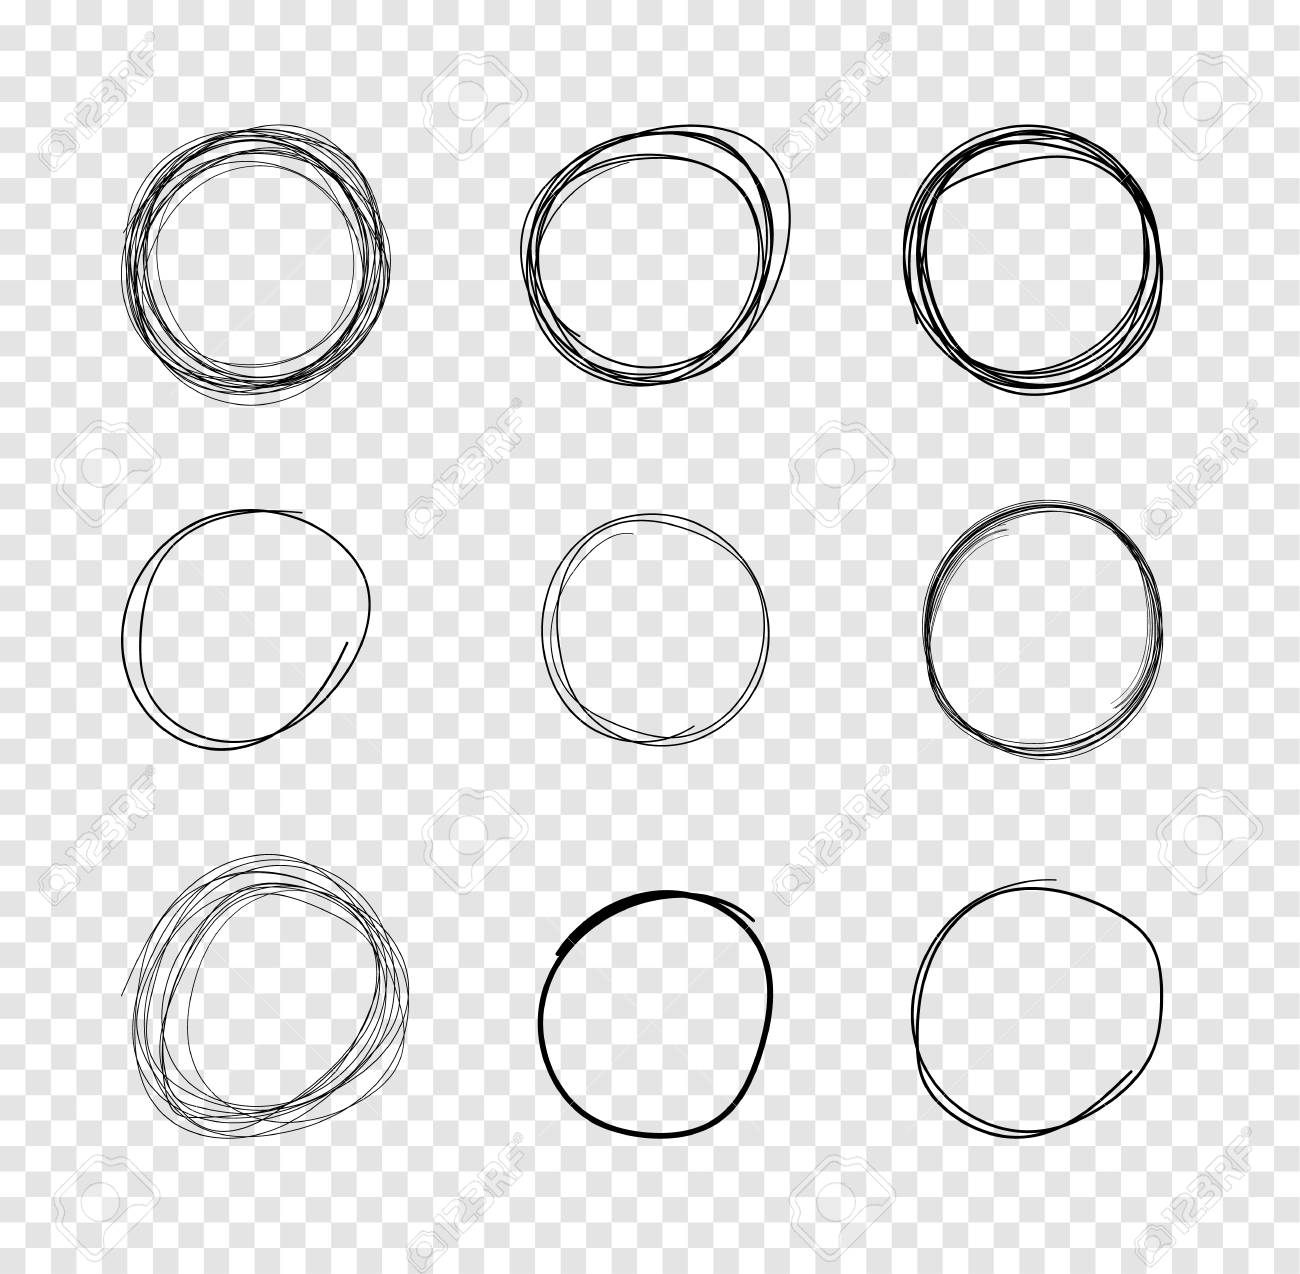 Vector Hand Drawn Circles Scribble Lines Drawings On Isolated